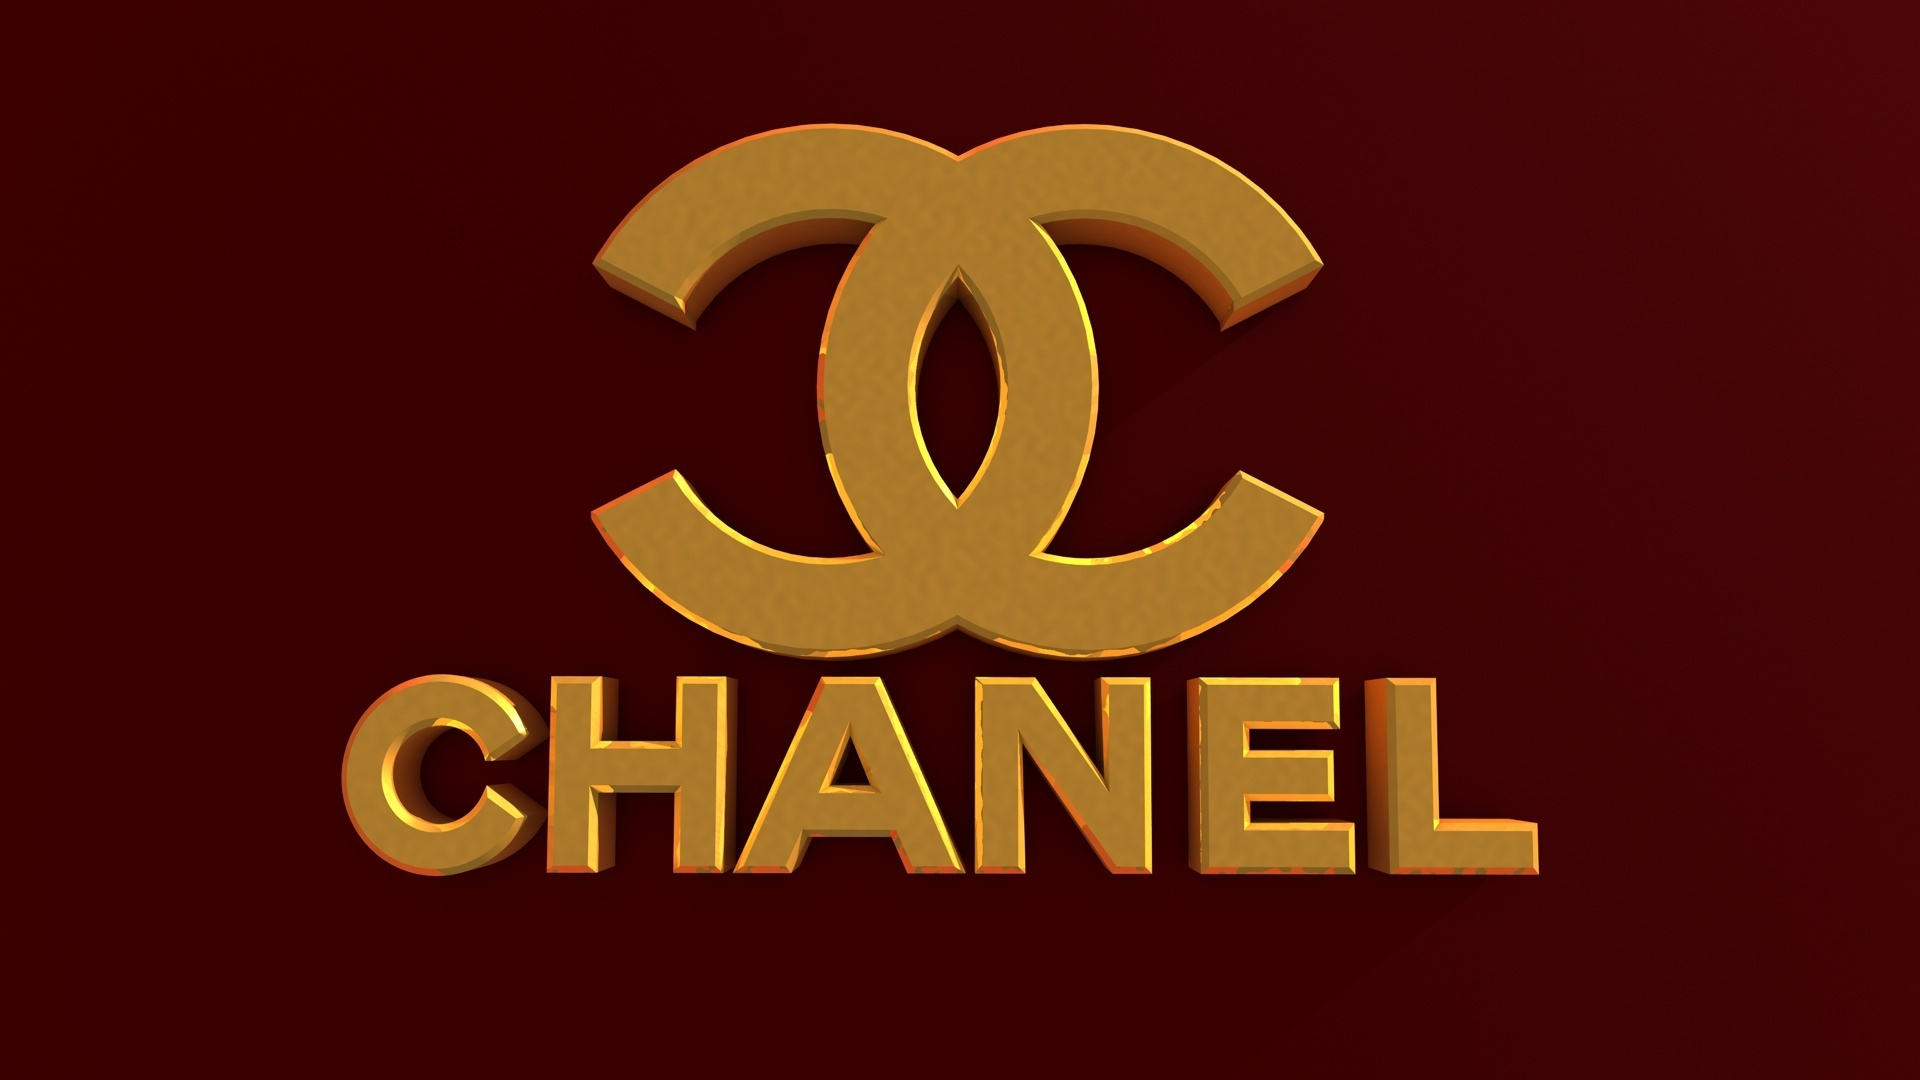 Chanel-logo-HD-1920%C3%971080-wallpaper-wp3403824